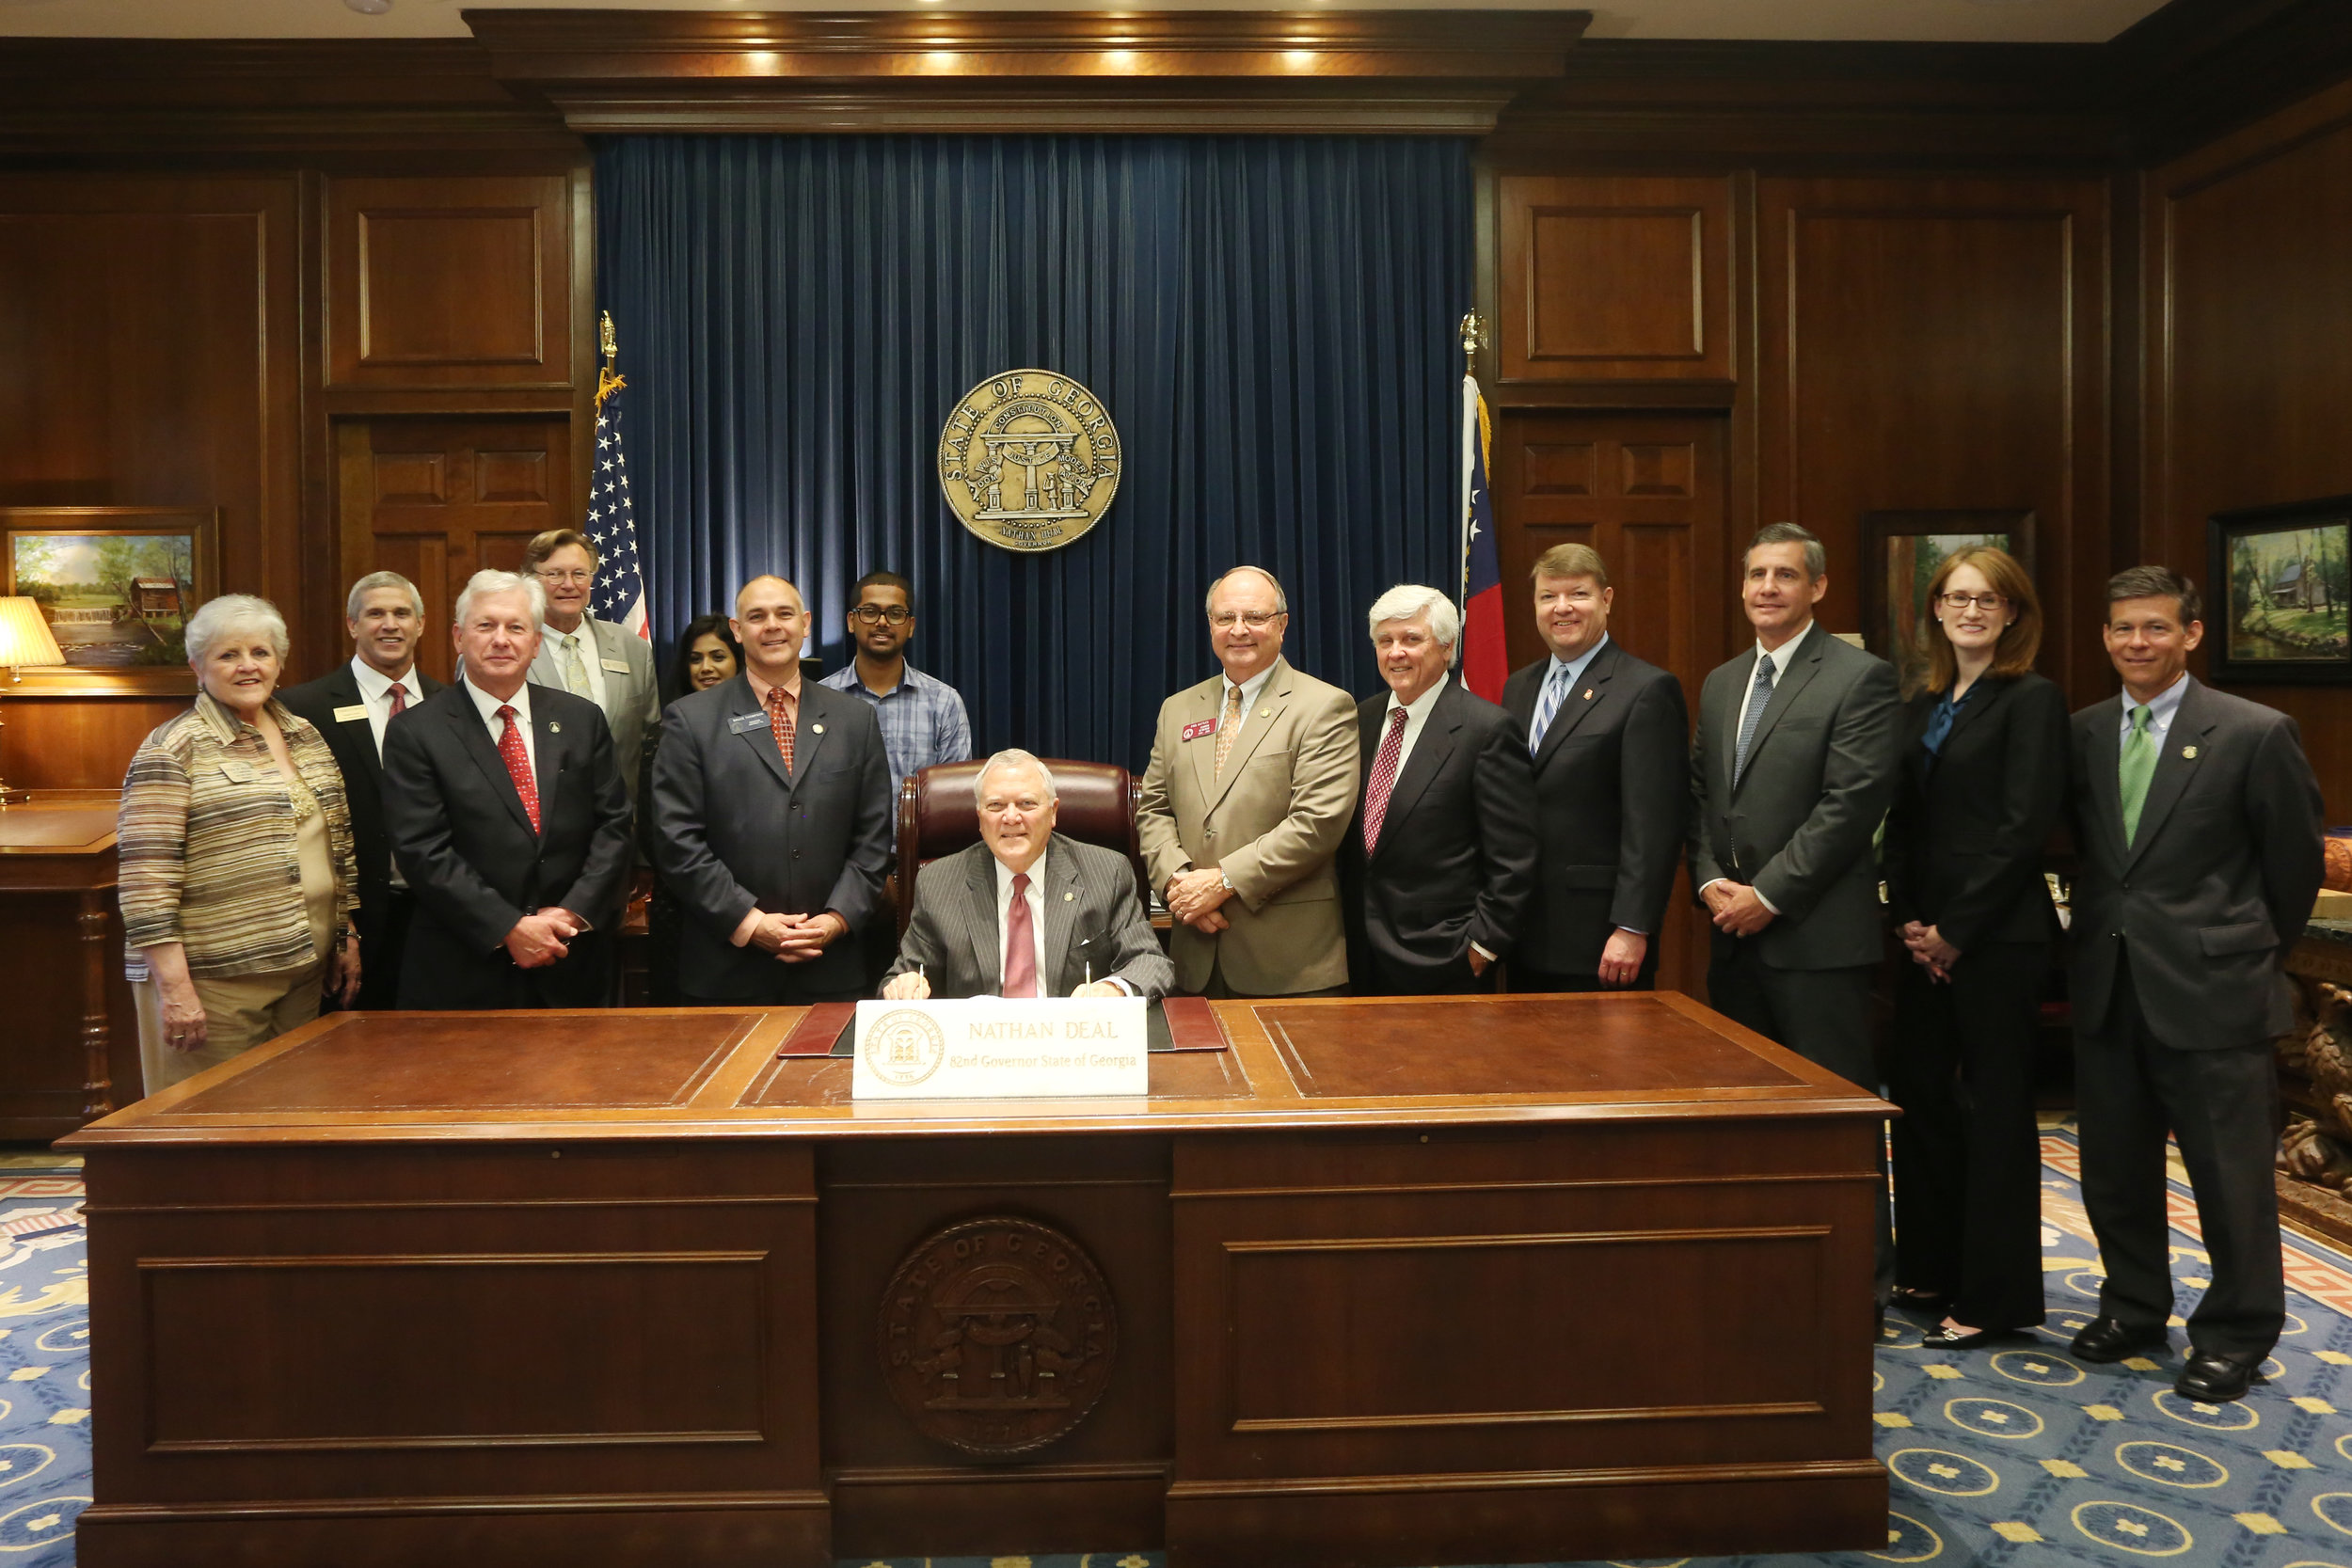 Sara Sorenson attends signing of HB 202 - May 5, 2015Sara worked with representatives of the Georgia Association of Assessing Officials (GAAO), Georgia Superior Court Clerk's Authority (GSCCA), the Association of County Commissioners of Georgia (ACCG), representatives from Georgia Tax Commisioners, and other Georgia attorneys to draft House Bill 202, which revised Georgia's property tax appeal procedure.